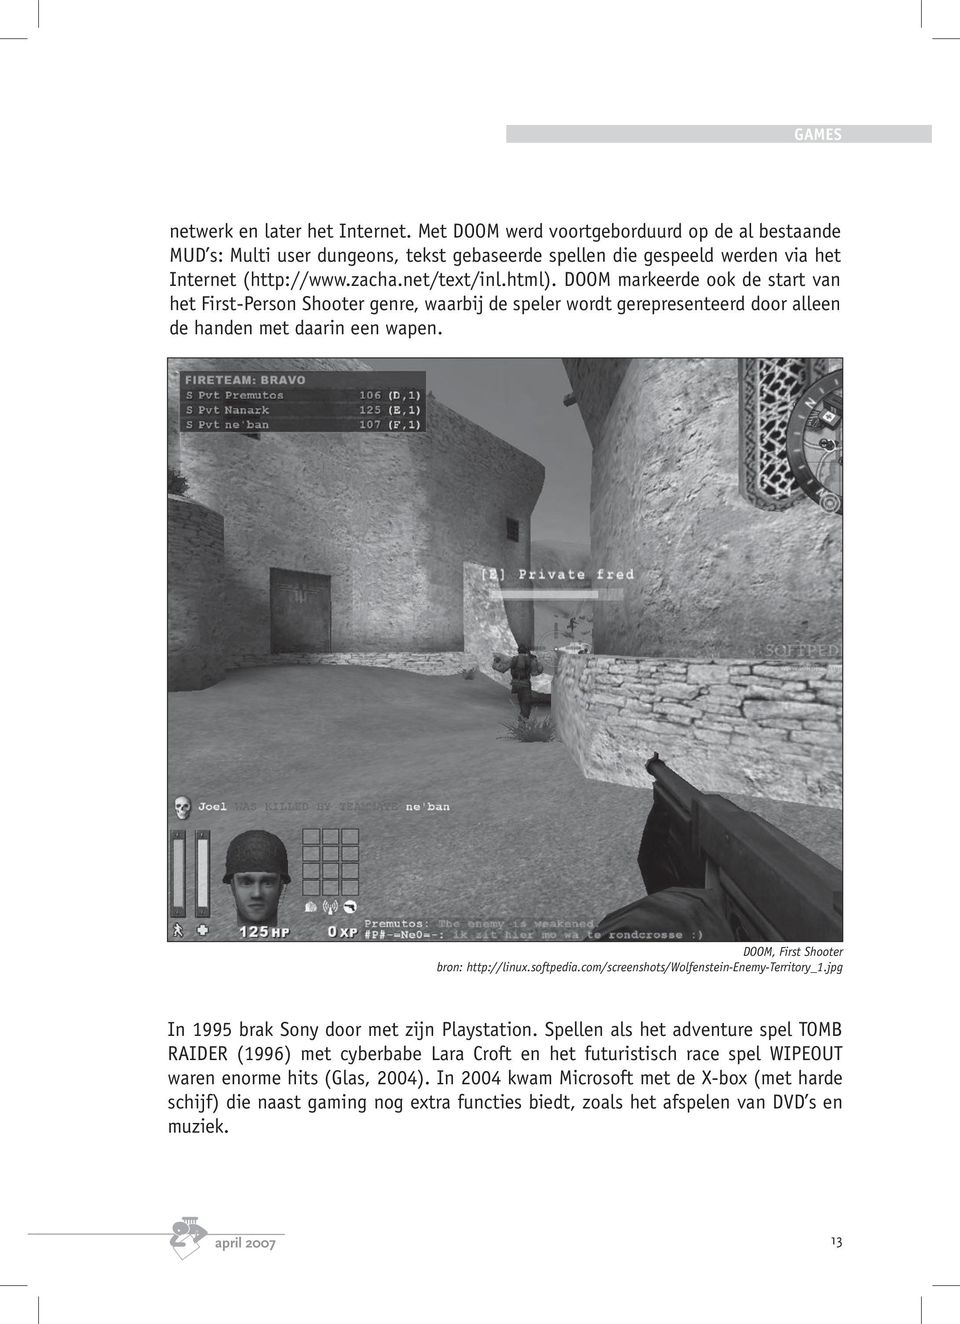 DOOM, First Shooter bron: http://linux.softpedia.com/screenshots/wolfenstein-enemy-territory_1.jpg In 1995 brak Sony door met zijn Playstation.